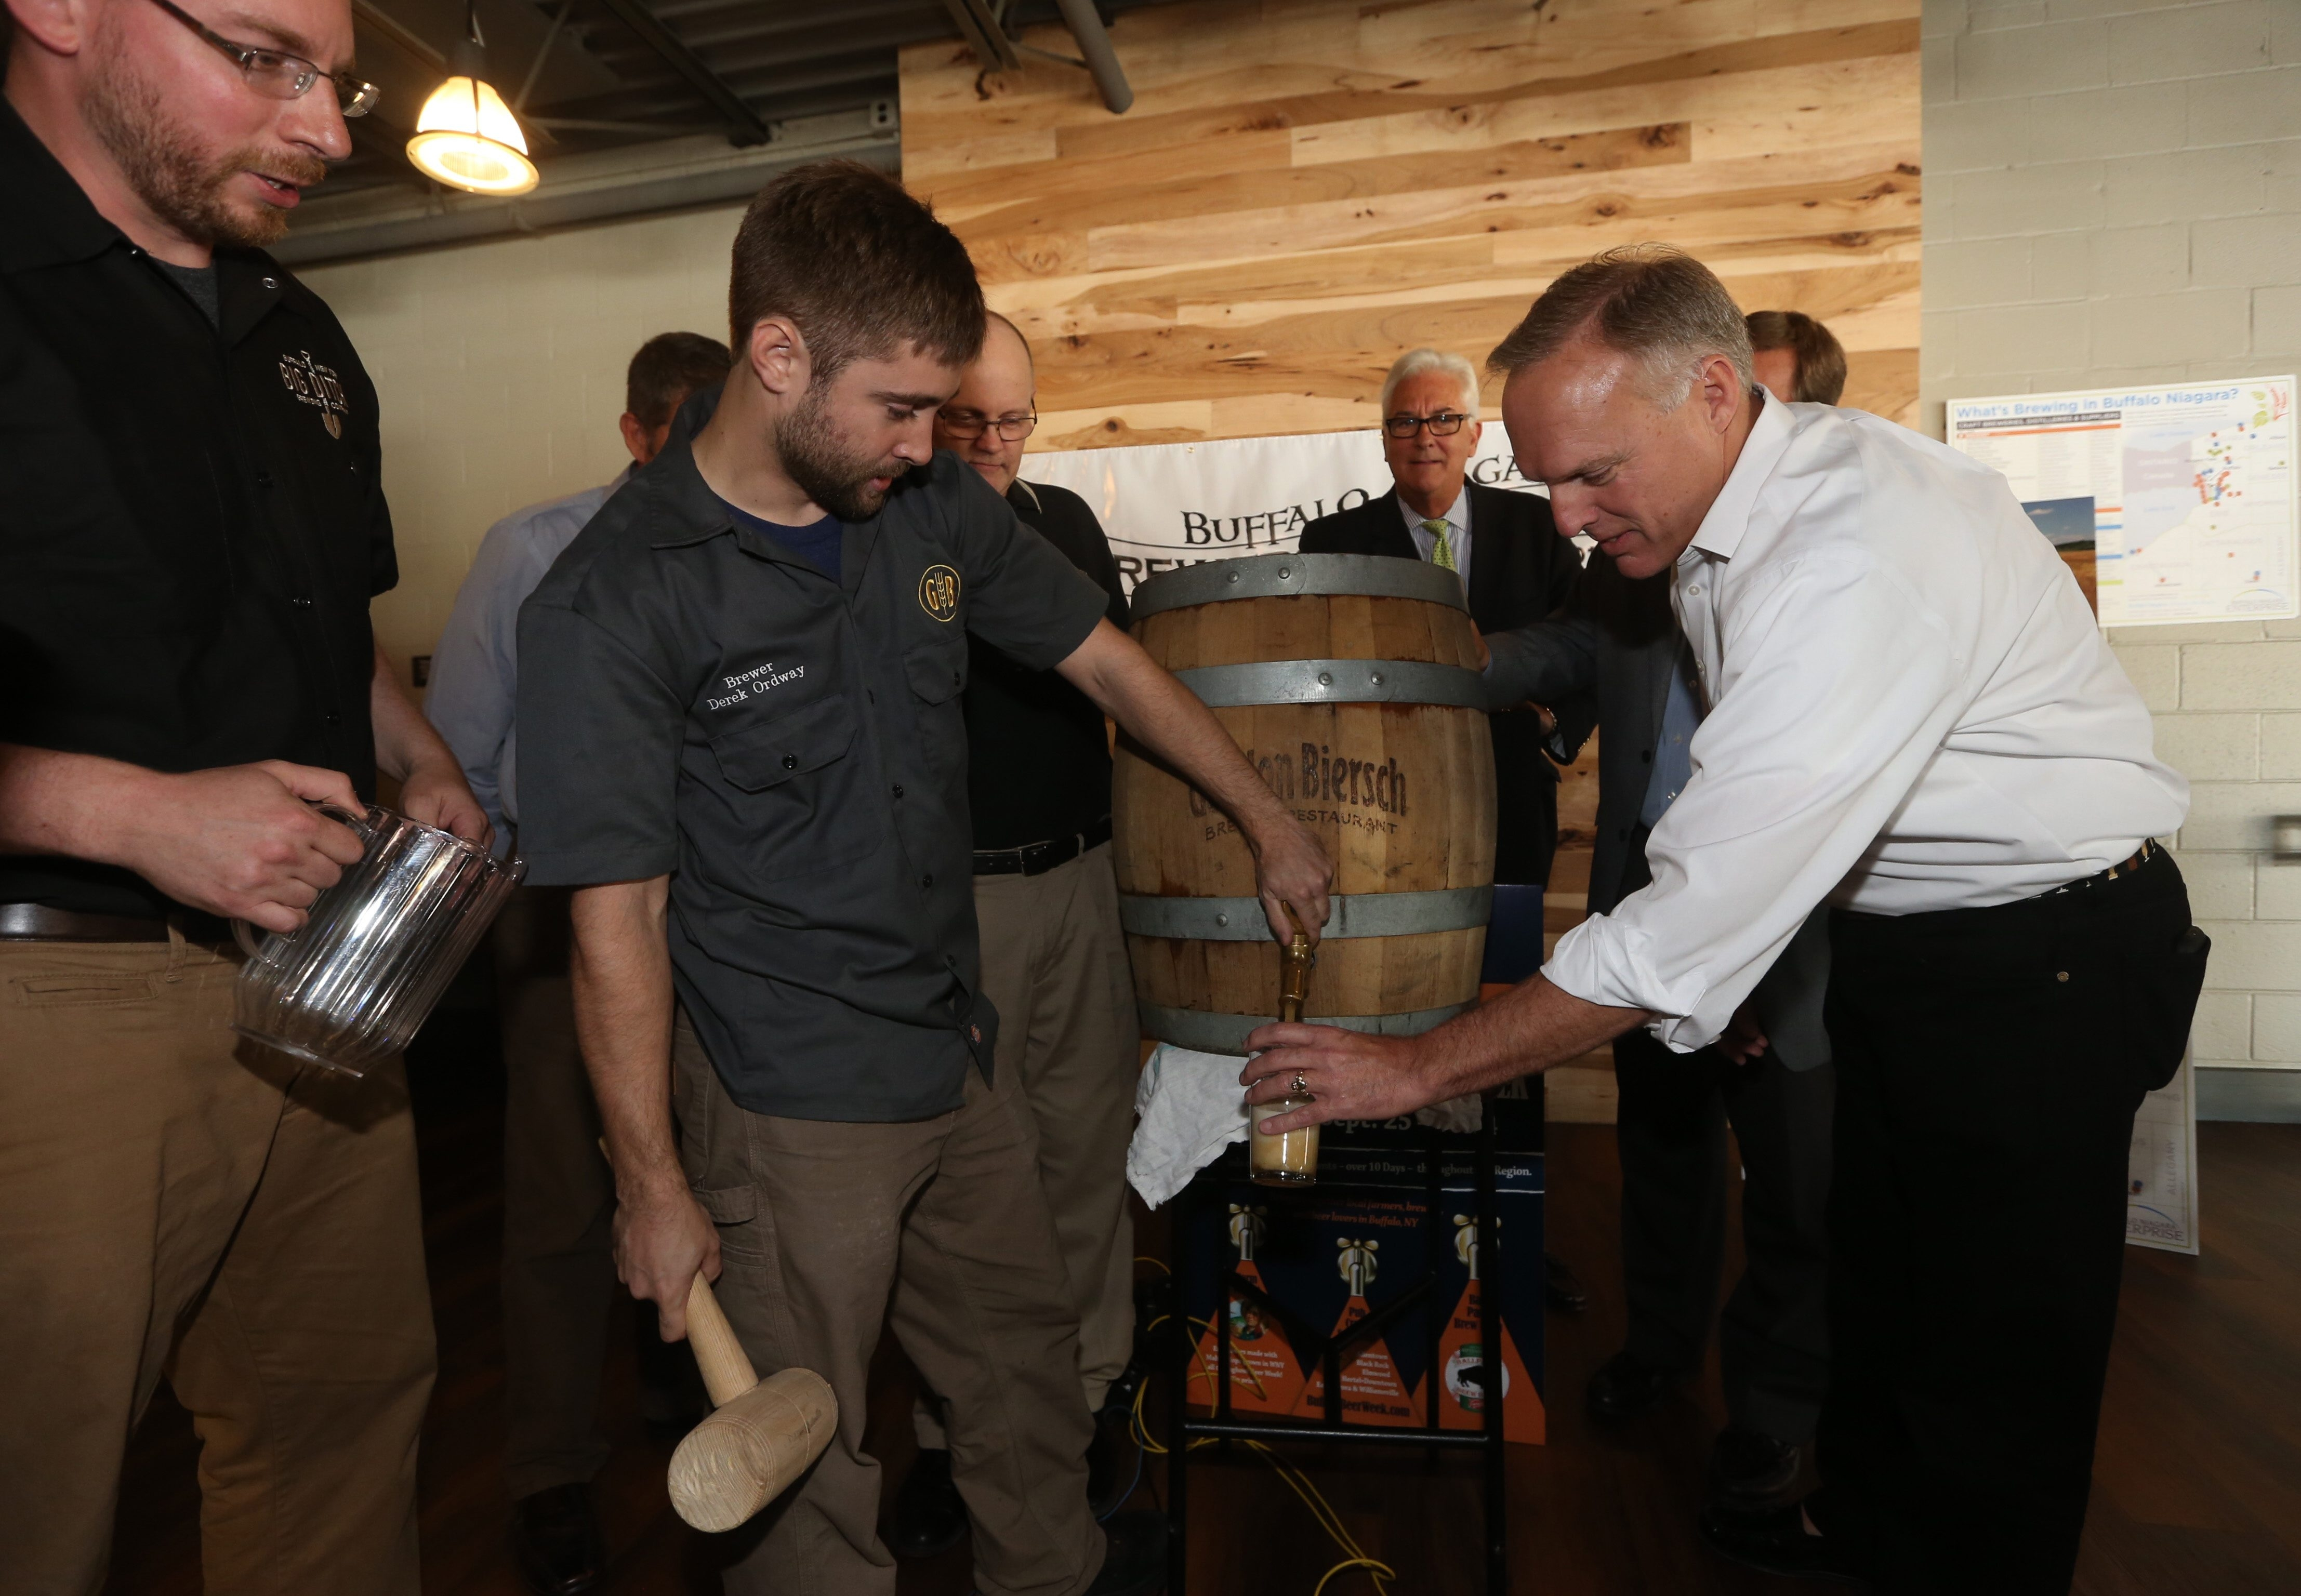 Matt Kahn, left, of Big Ditch Brewing, watches Derek Ordway, head brewer of Gordon Biersch, tap a keg with Neil Kavanaugh of Consumer Beverages at a keg-tapping ceremony at Big Ditch Brewery to kick off the sixth annual Buffalo Beer Week on Tuesday.